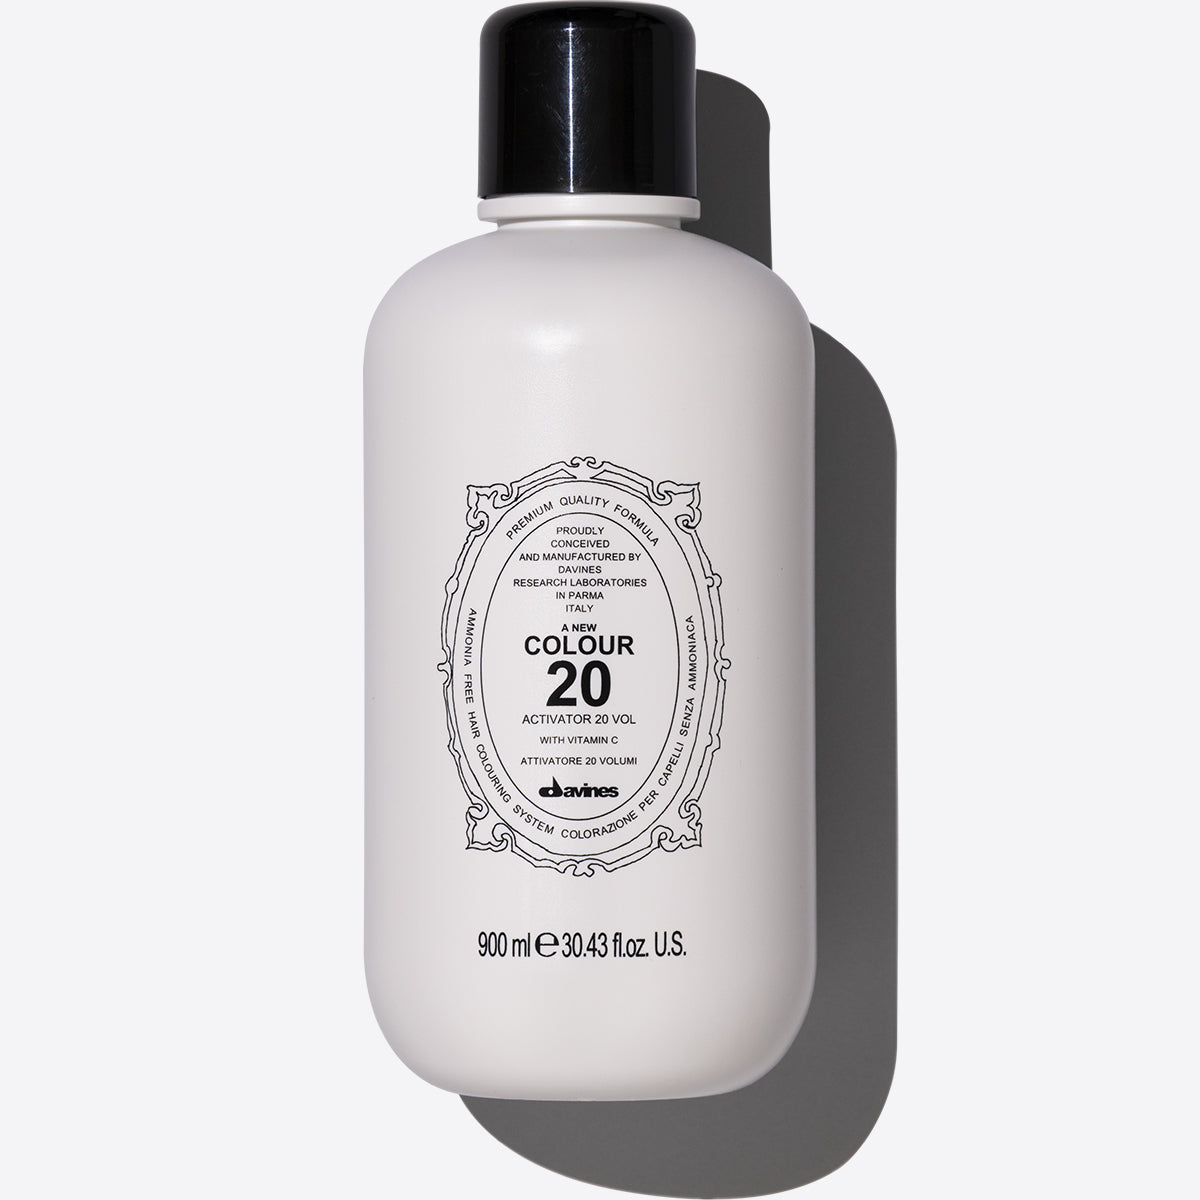 Activator 20 vol 1  900 ml / 30,43 fl.oz.Davines